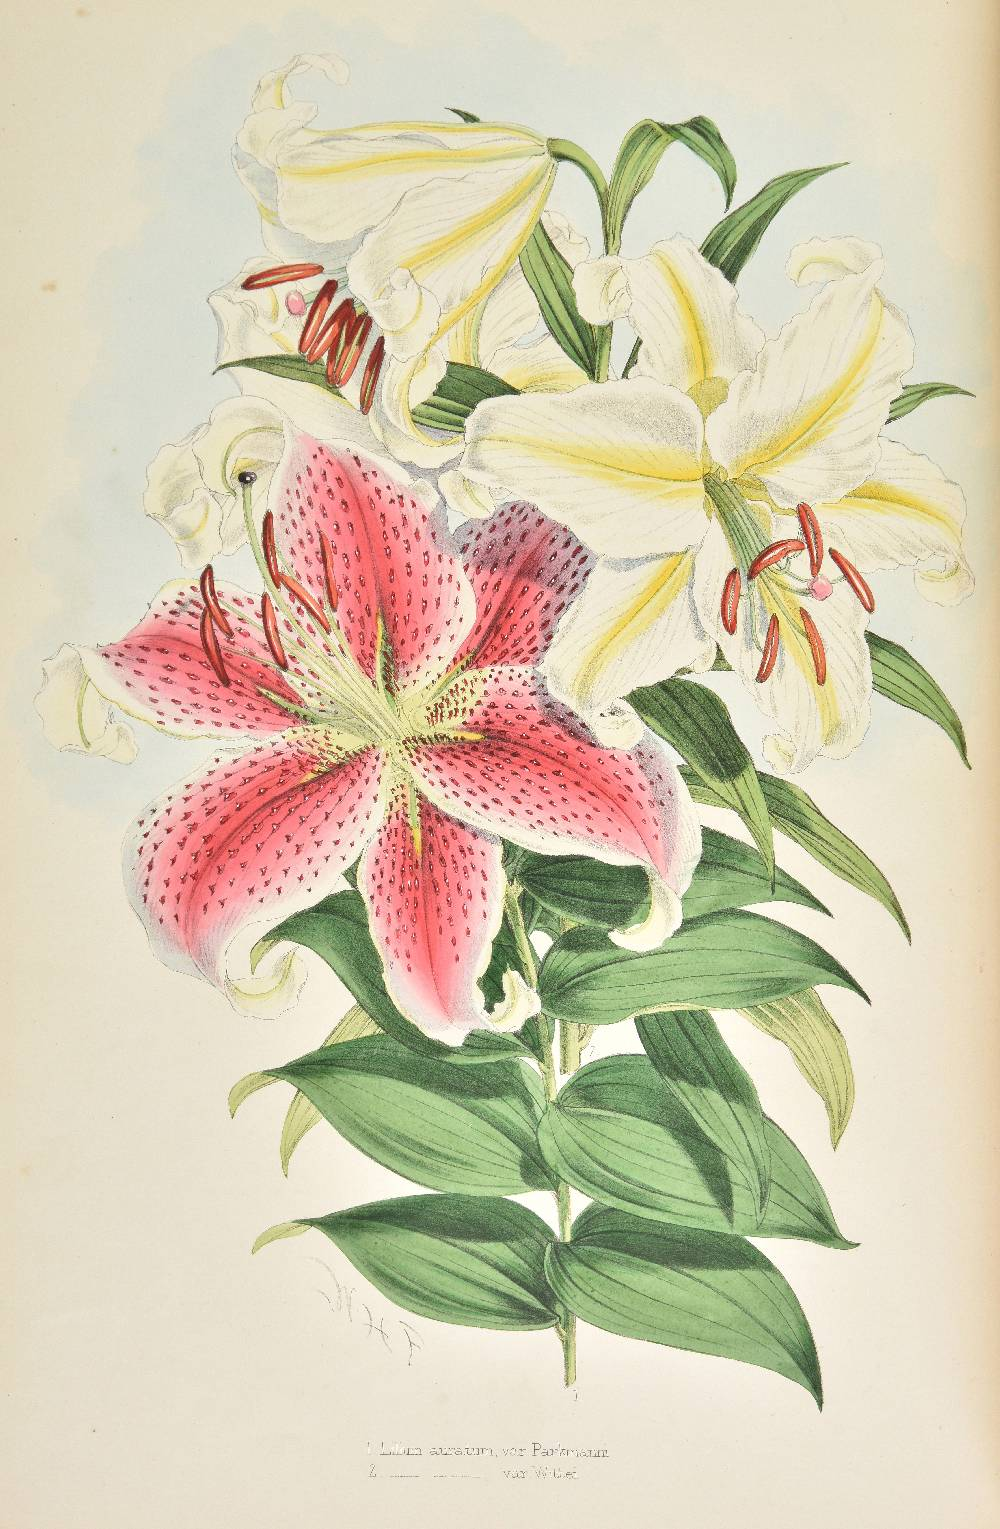 Lot 28 - Elwes (Henry John). A Monograph of the Genus Lilium, 1st edition, [1877-] 1880, decorative title